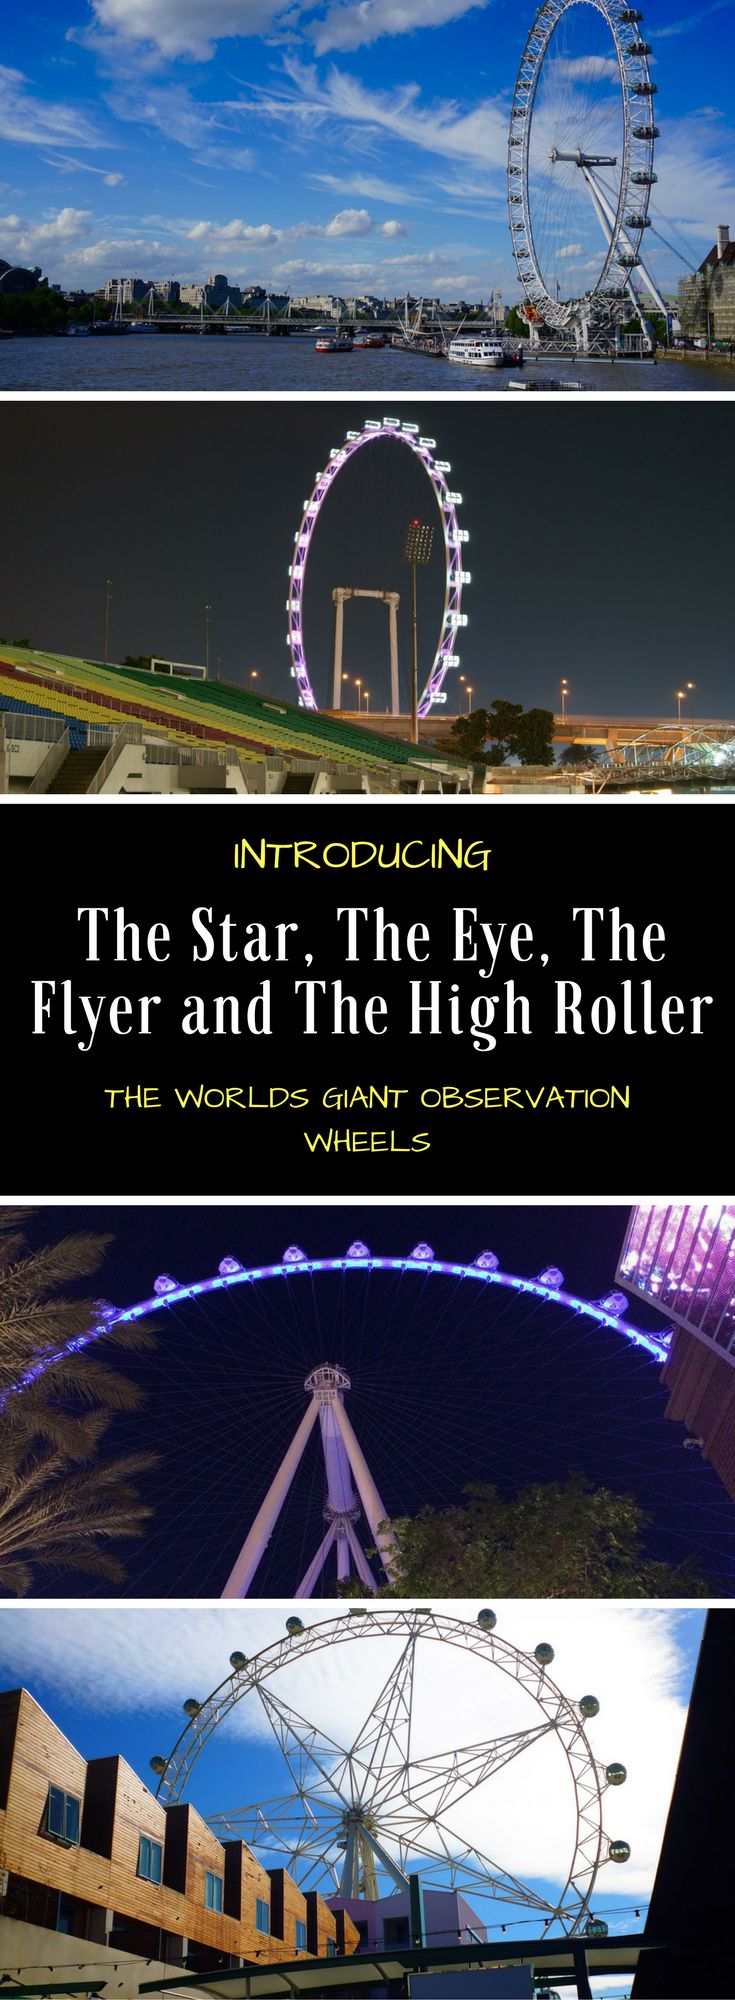 These 4 wheels all represent a new classification called Giant Observation Wheels. No longer is a Ferris Wheel just a Ferris wheel. The Star, Flyer, Eye and High Roller have become their own category.  #Melbournestar #londoneye #singaporeflyer #lasvegashighroller #ferriswheel #observationwheel #familytravel #londonattractions #singaporeattractions #melbourneattractions #lasvegasattraction